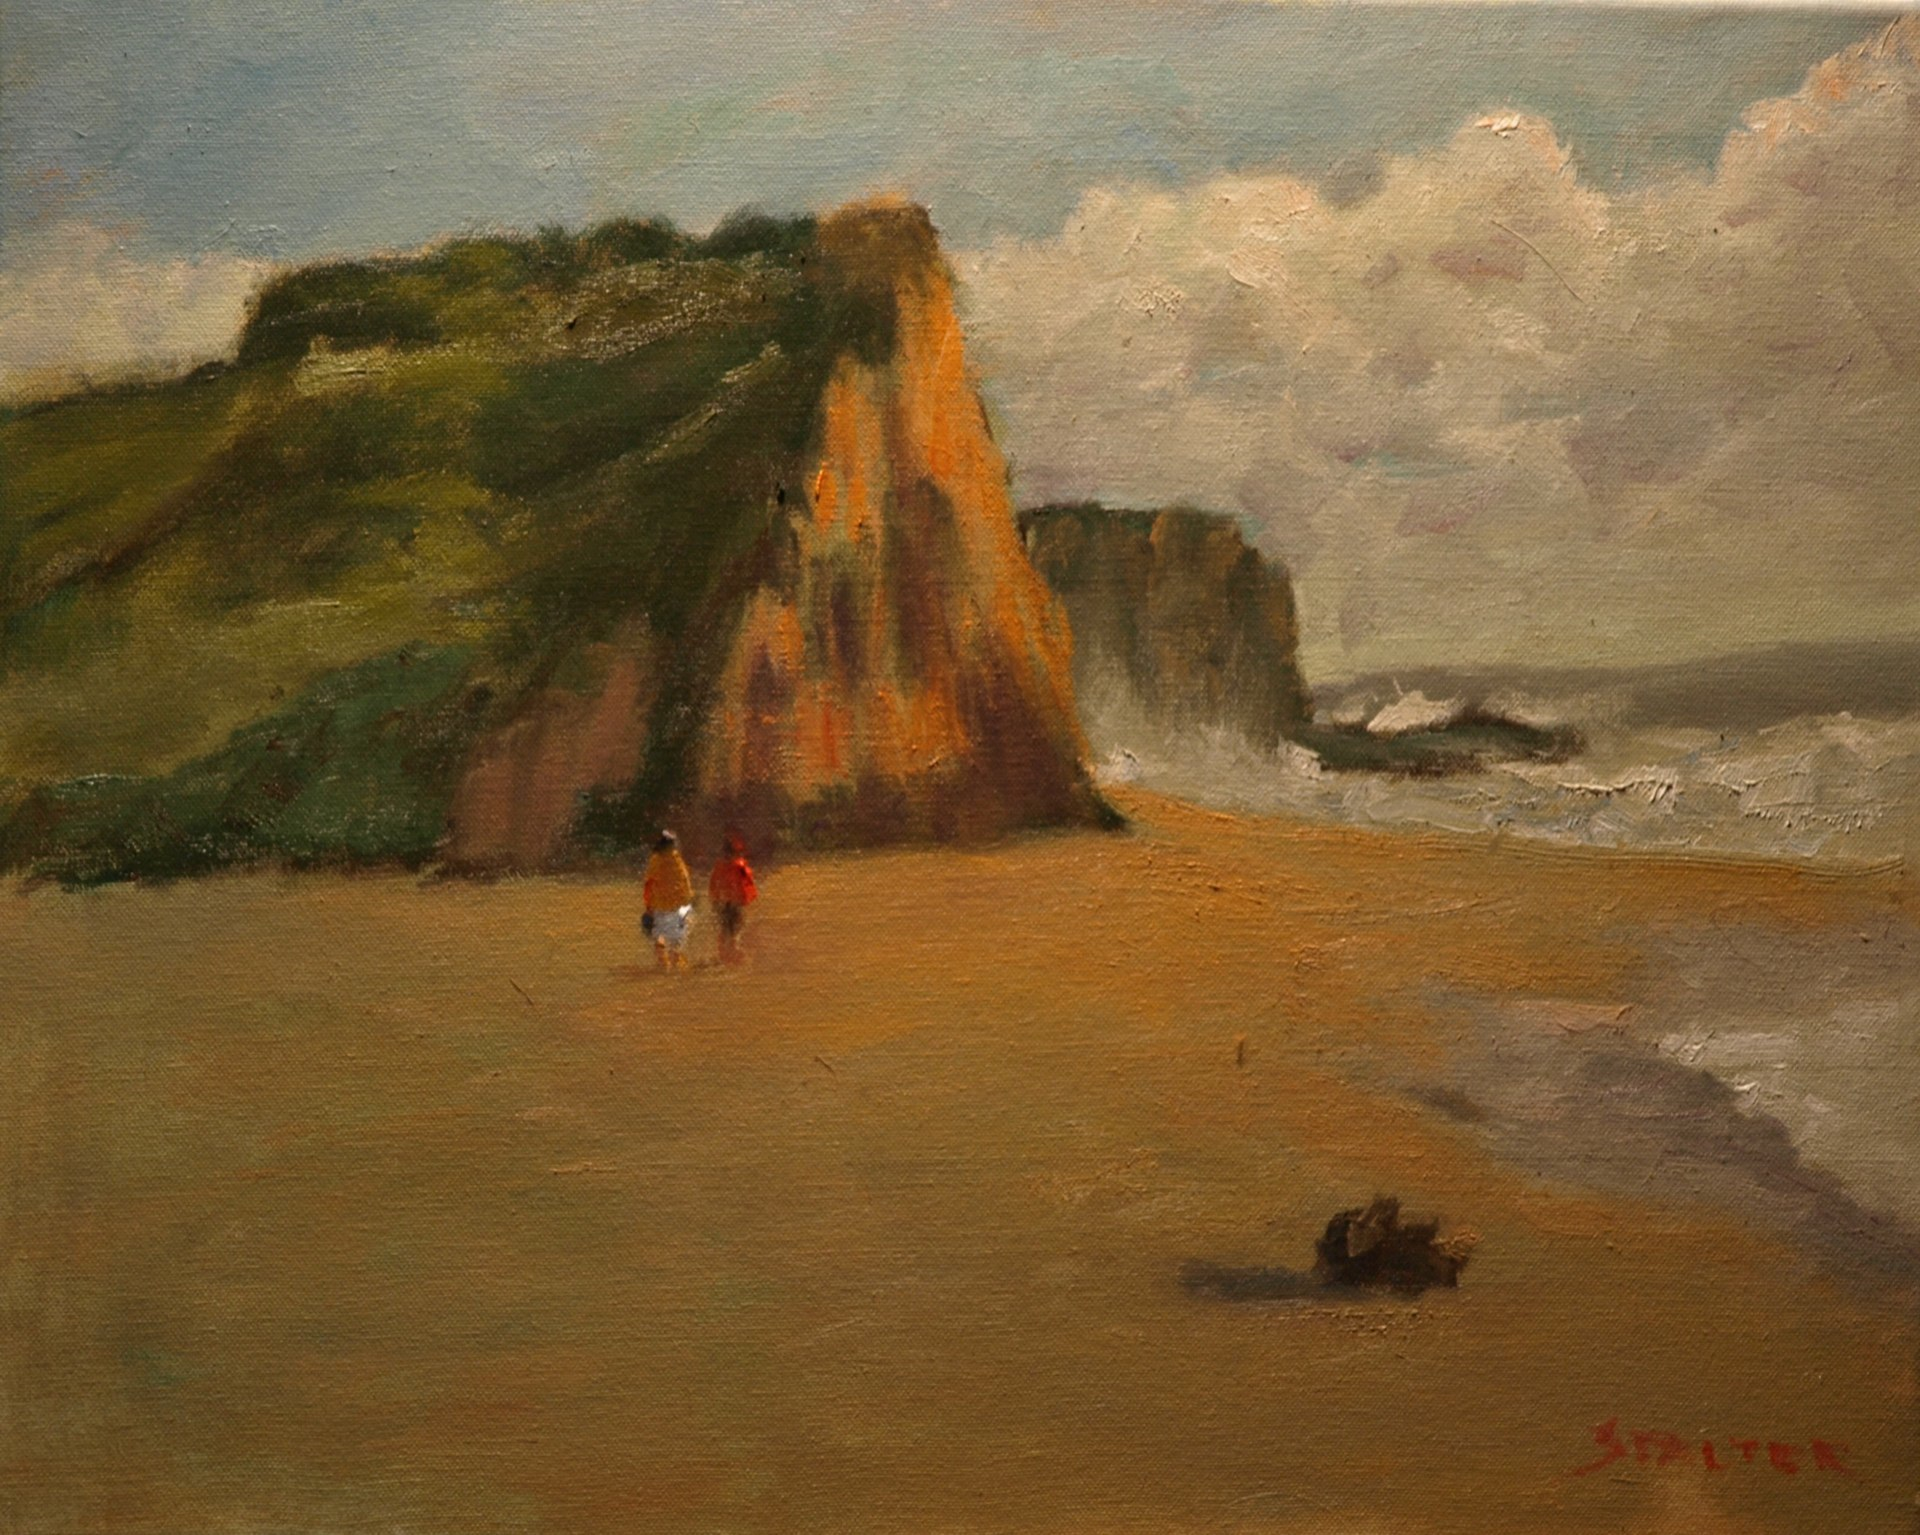 Beach and Large Formations, Oil on Canvas, 16 x 20 Inches, by Richard Stalter, $425